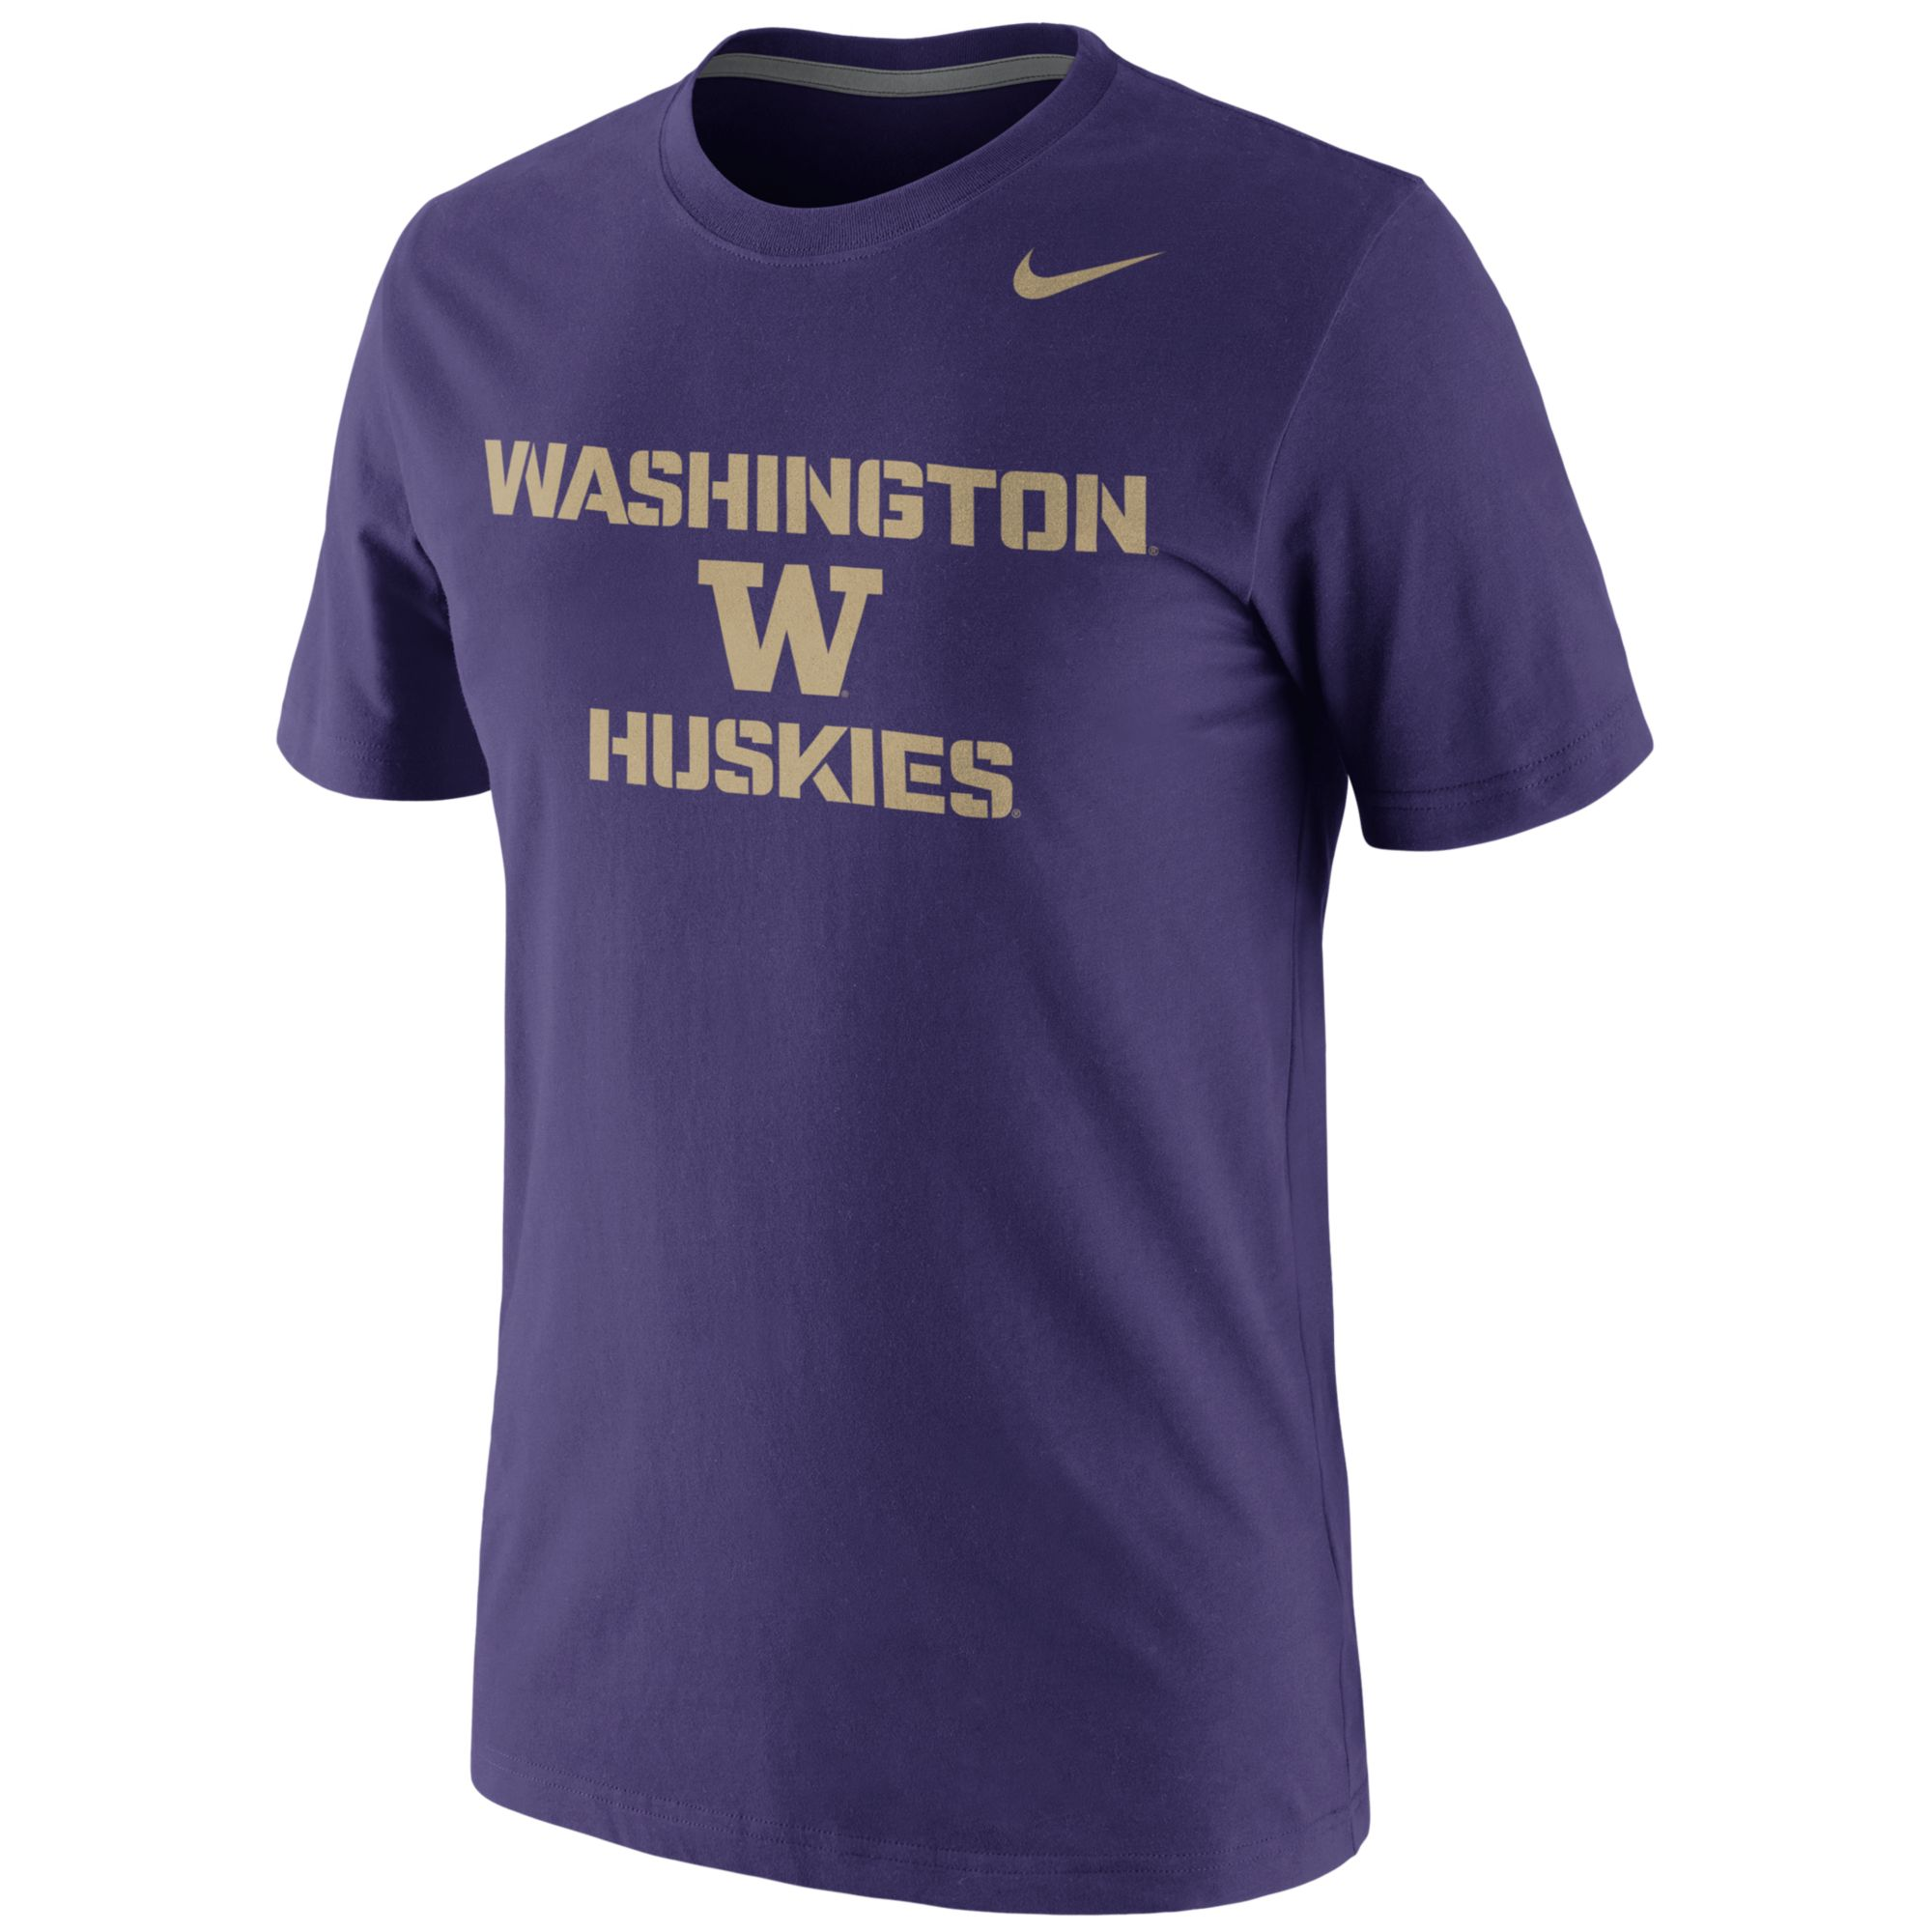 Nike Short Sleeve Washington Huskies T Shirt In Purple For